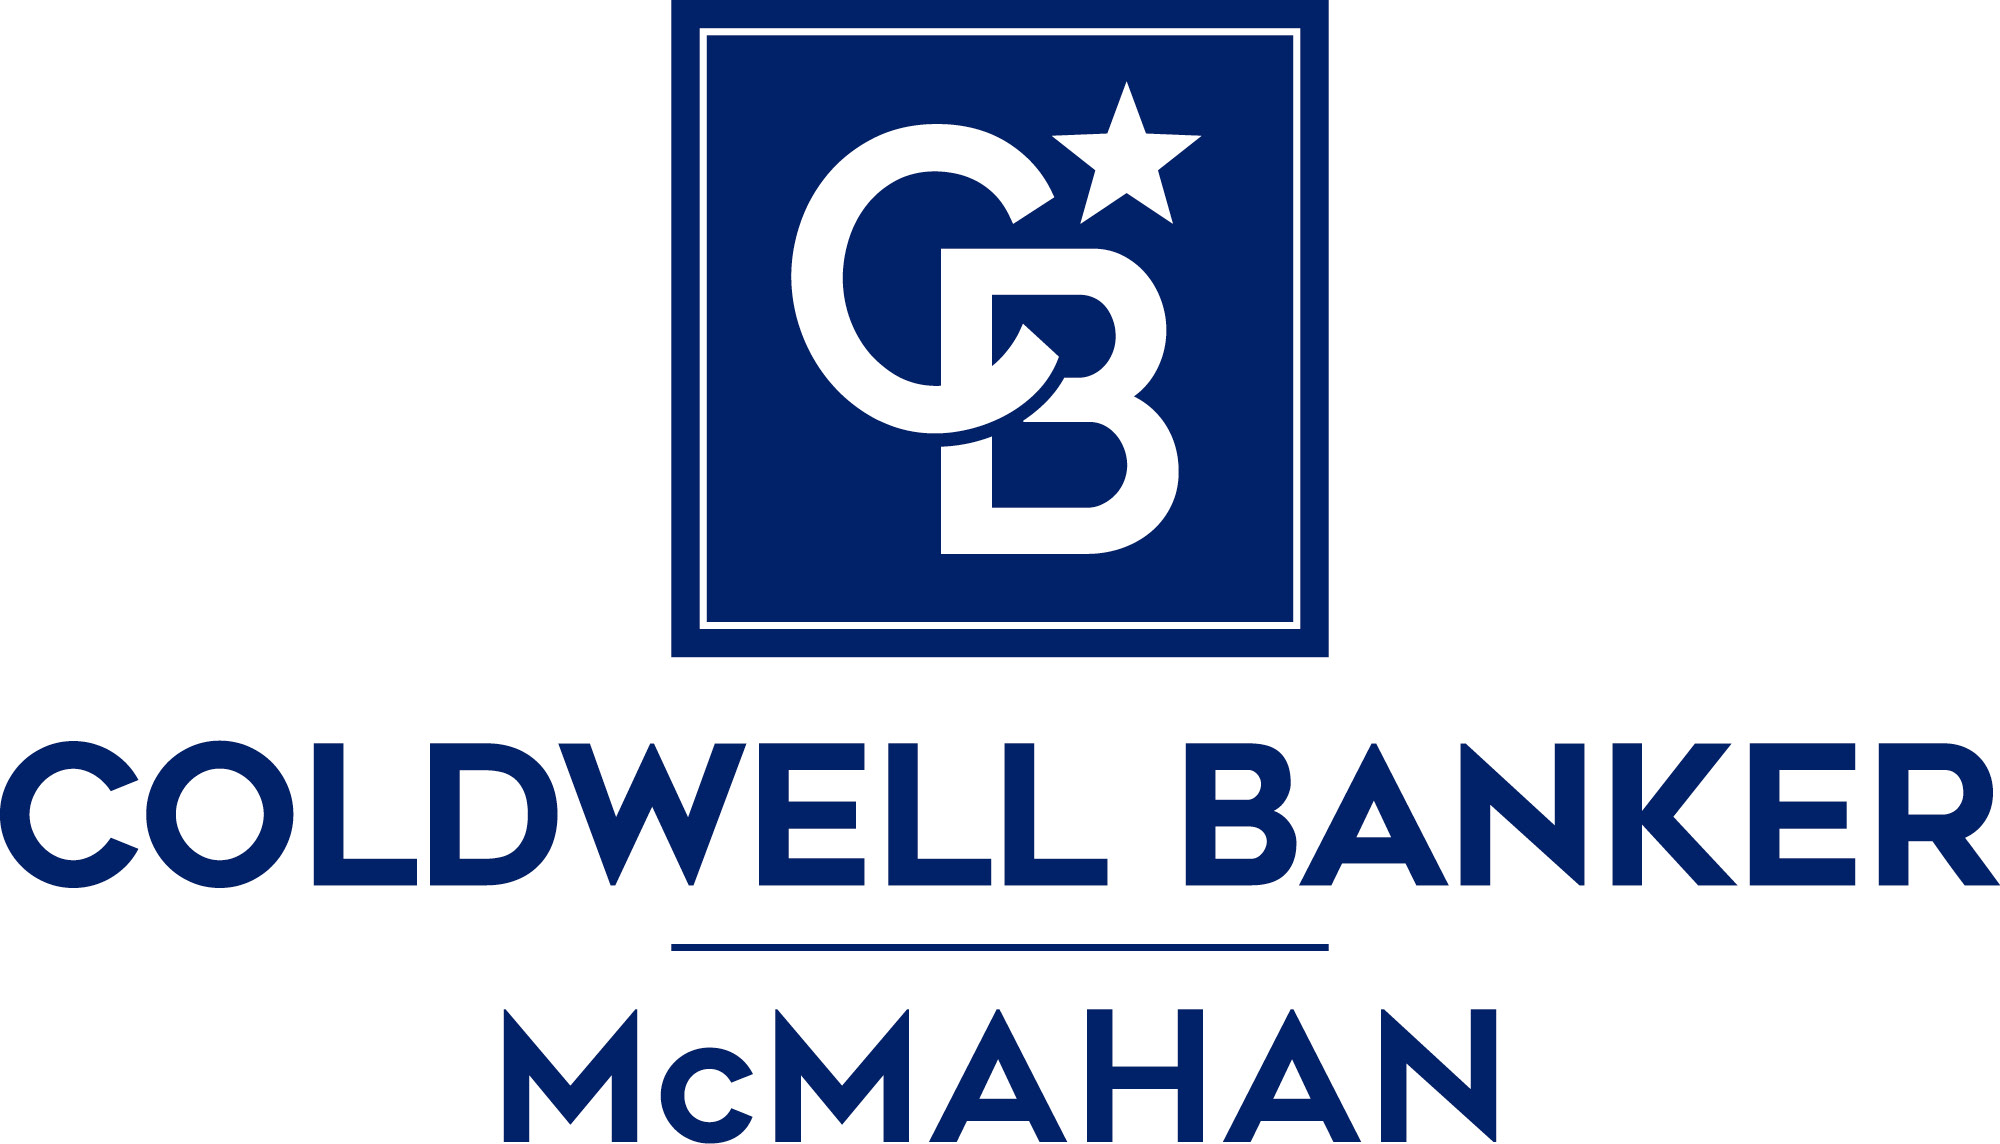 Jeff Evans - Coldwell Banker McMahan